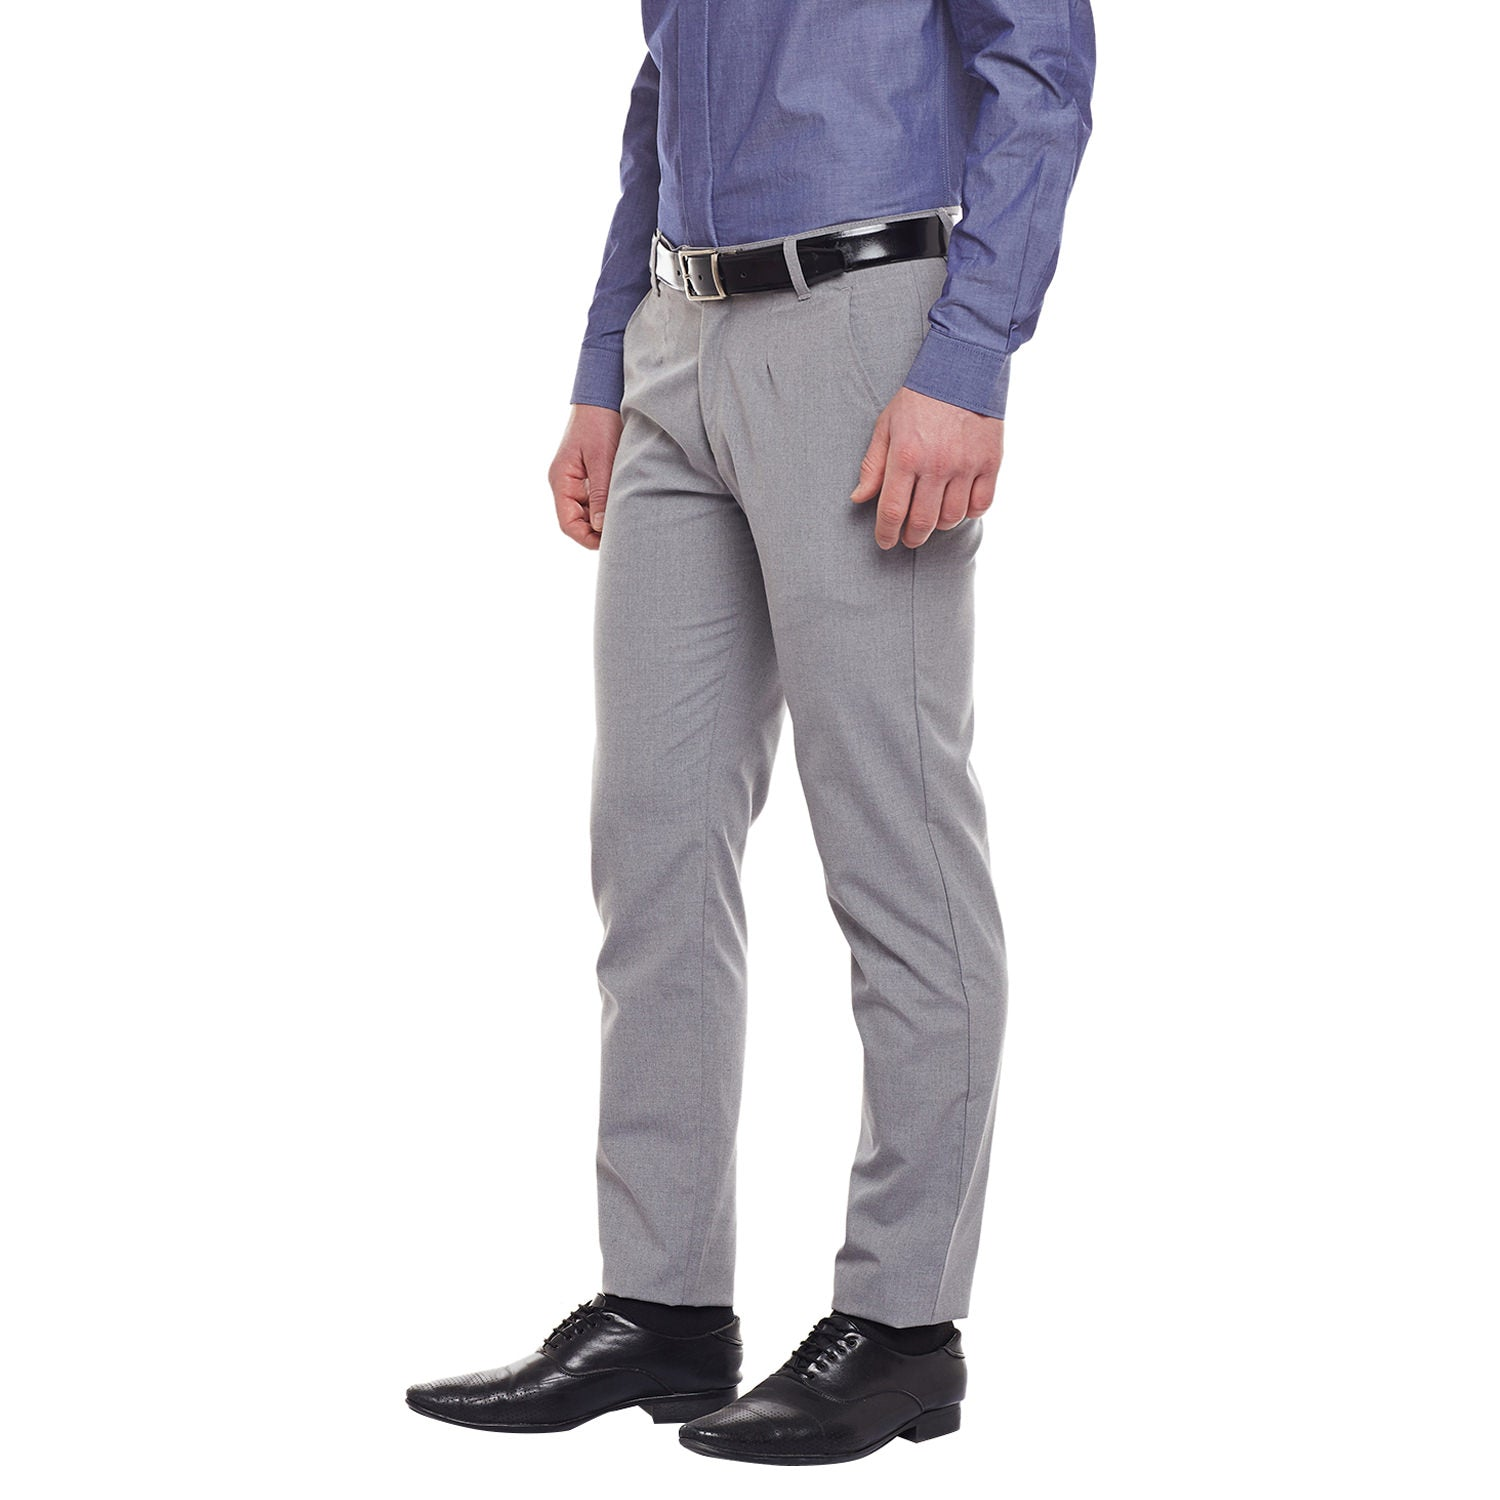 Atorse Mens Solid Grey Regular Fit Side Pocket Trouser